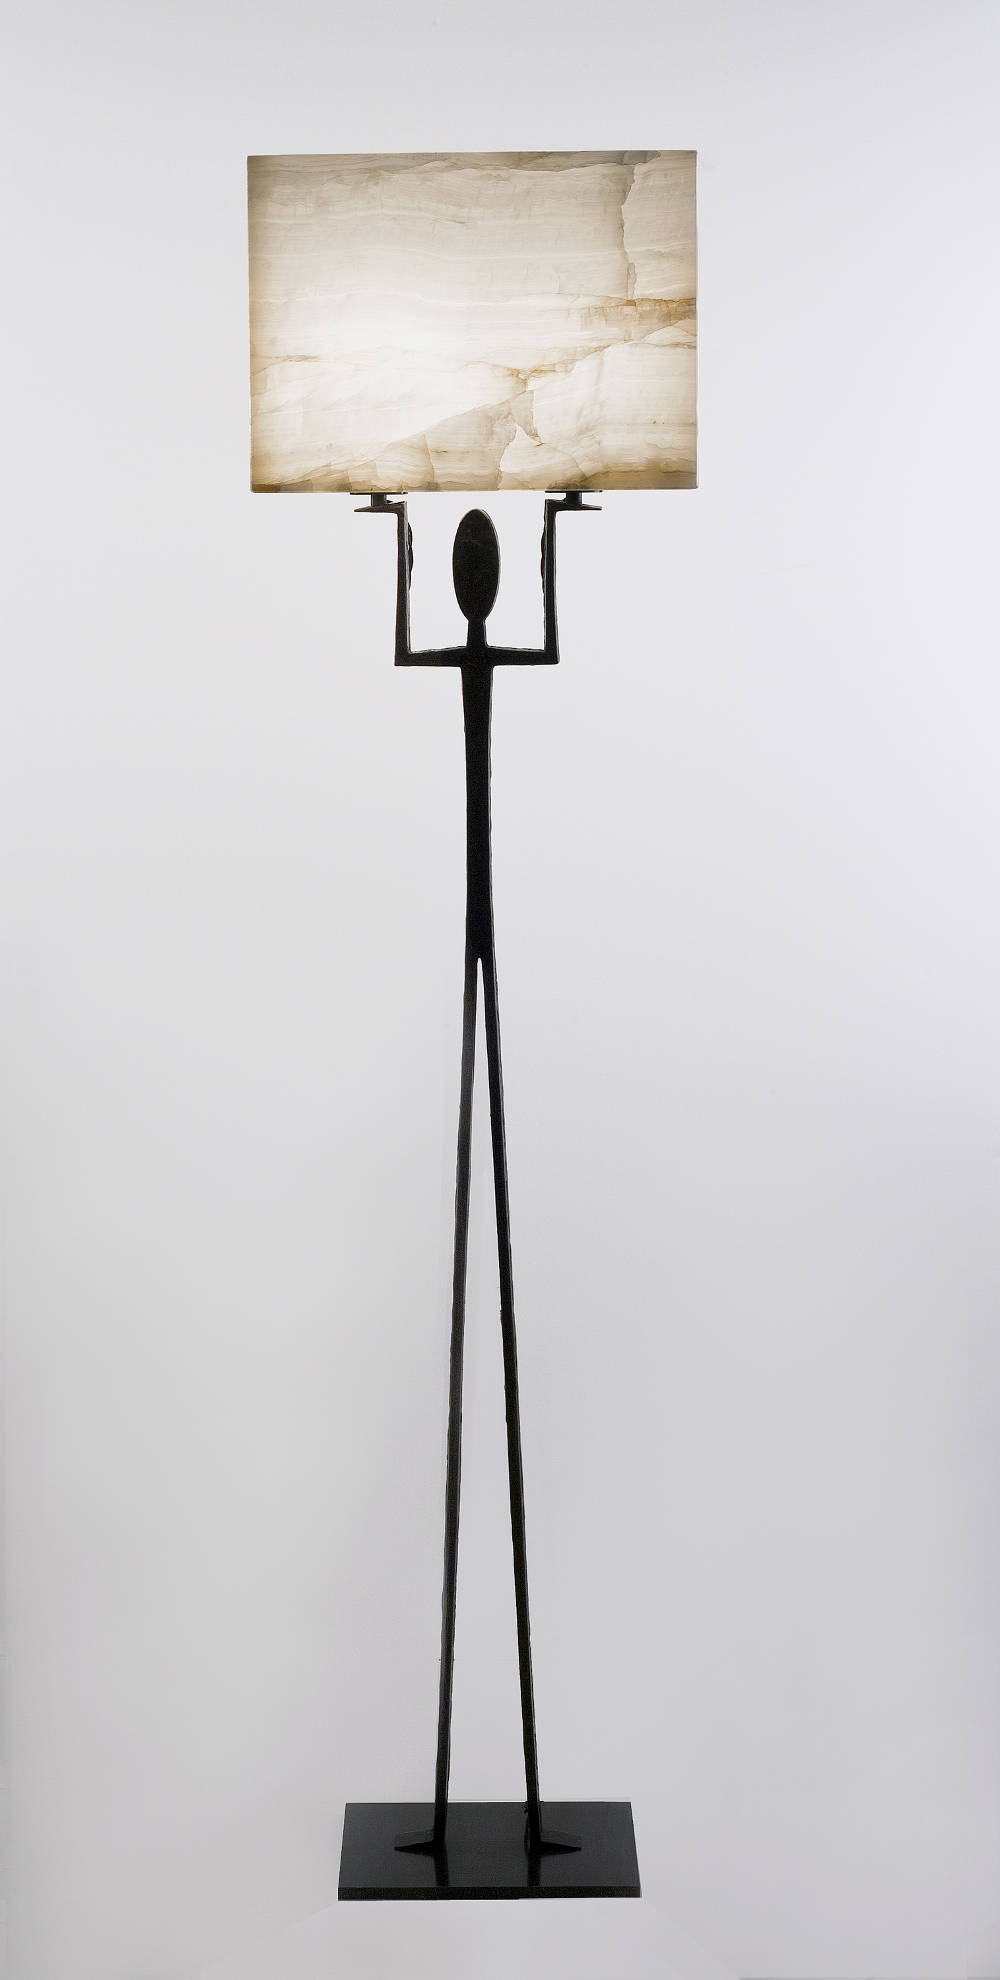 """Hercules, 2013. Limited Edition of 20 pieces + AP. Floor lamp with base formed by a burnished cast bronze stylised figure (silhouette) on a rectangular base holding a backlit hand-carved onyx block lamp share. Light source: 2 x 40W Clear E27. Height: 63.75"""" (162cm) - Width: 15.75"""" (40cm) - Depth: 10"""" (25cm). Weight: 29kg"""